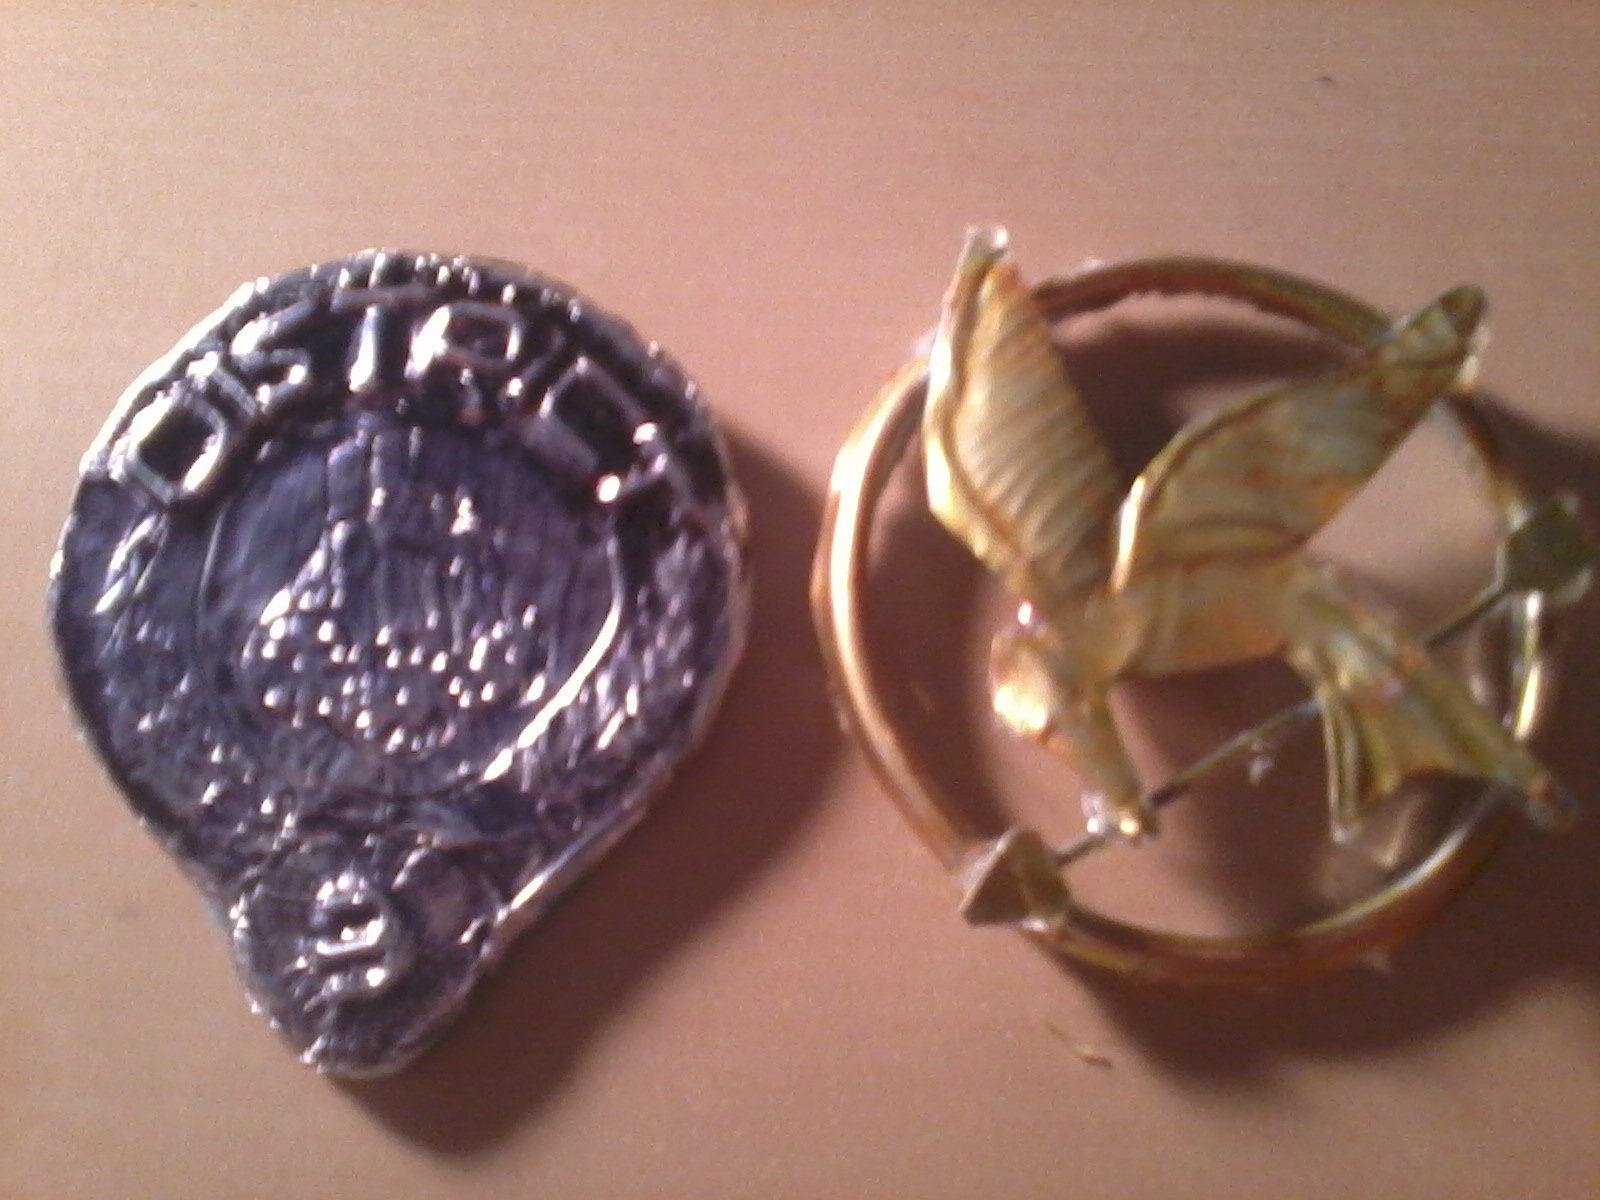 Hunger Games Mockingjay Pin and District Seal